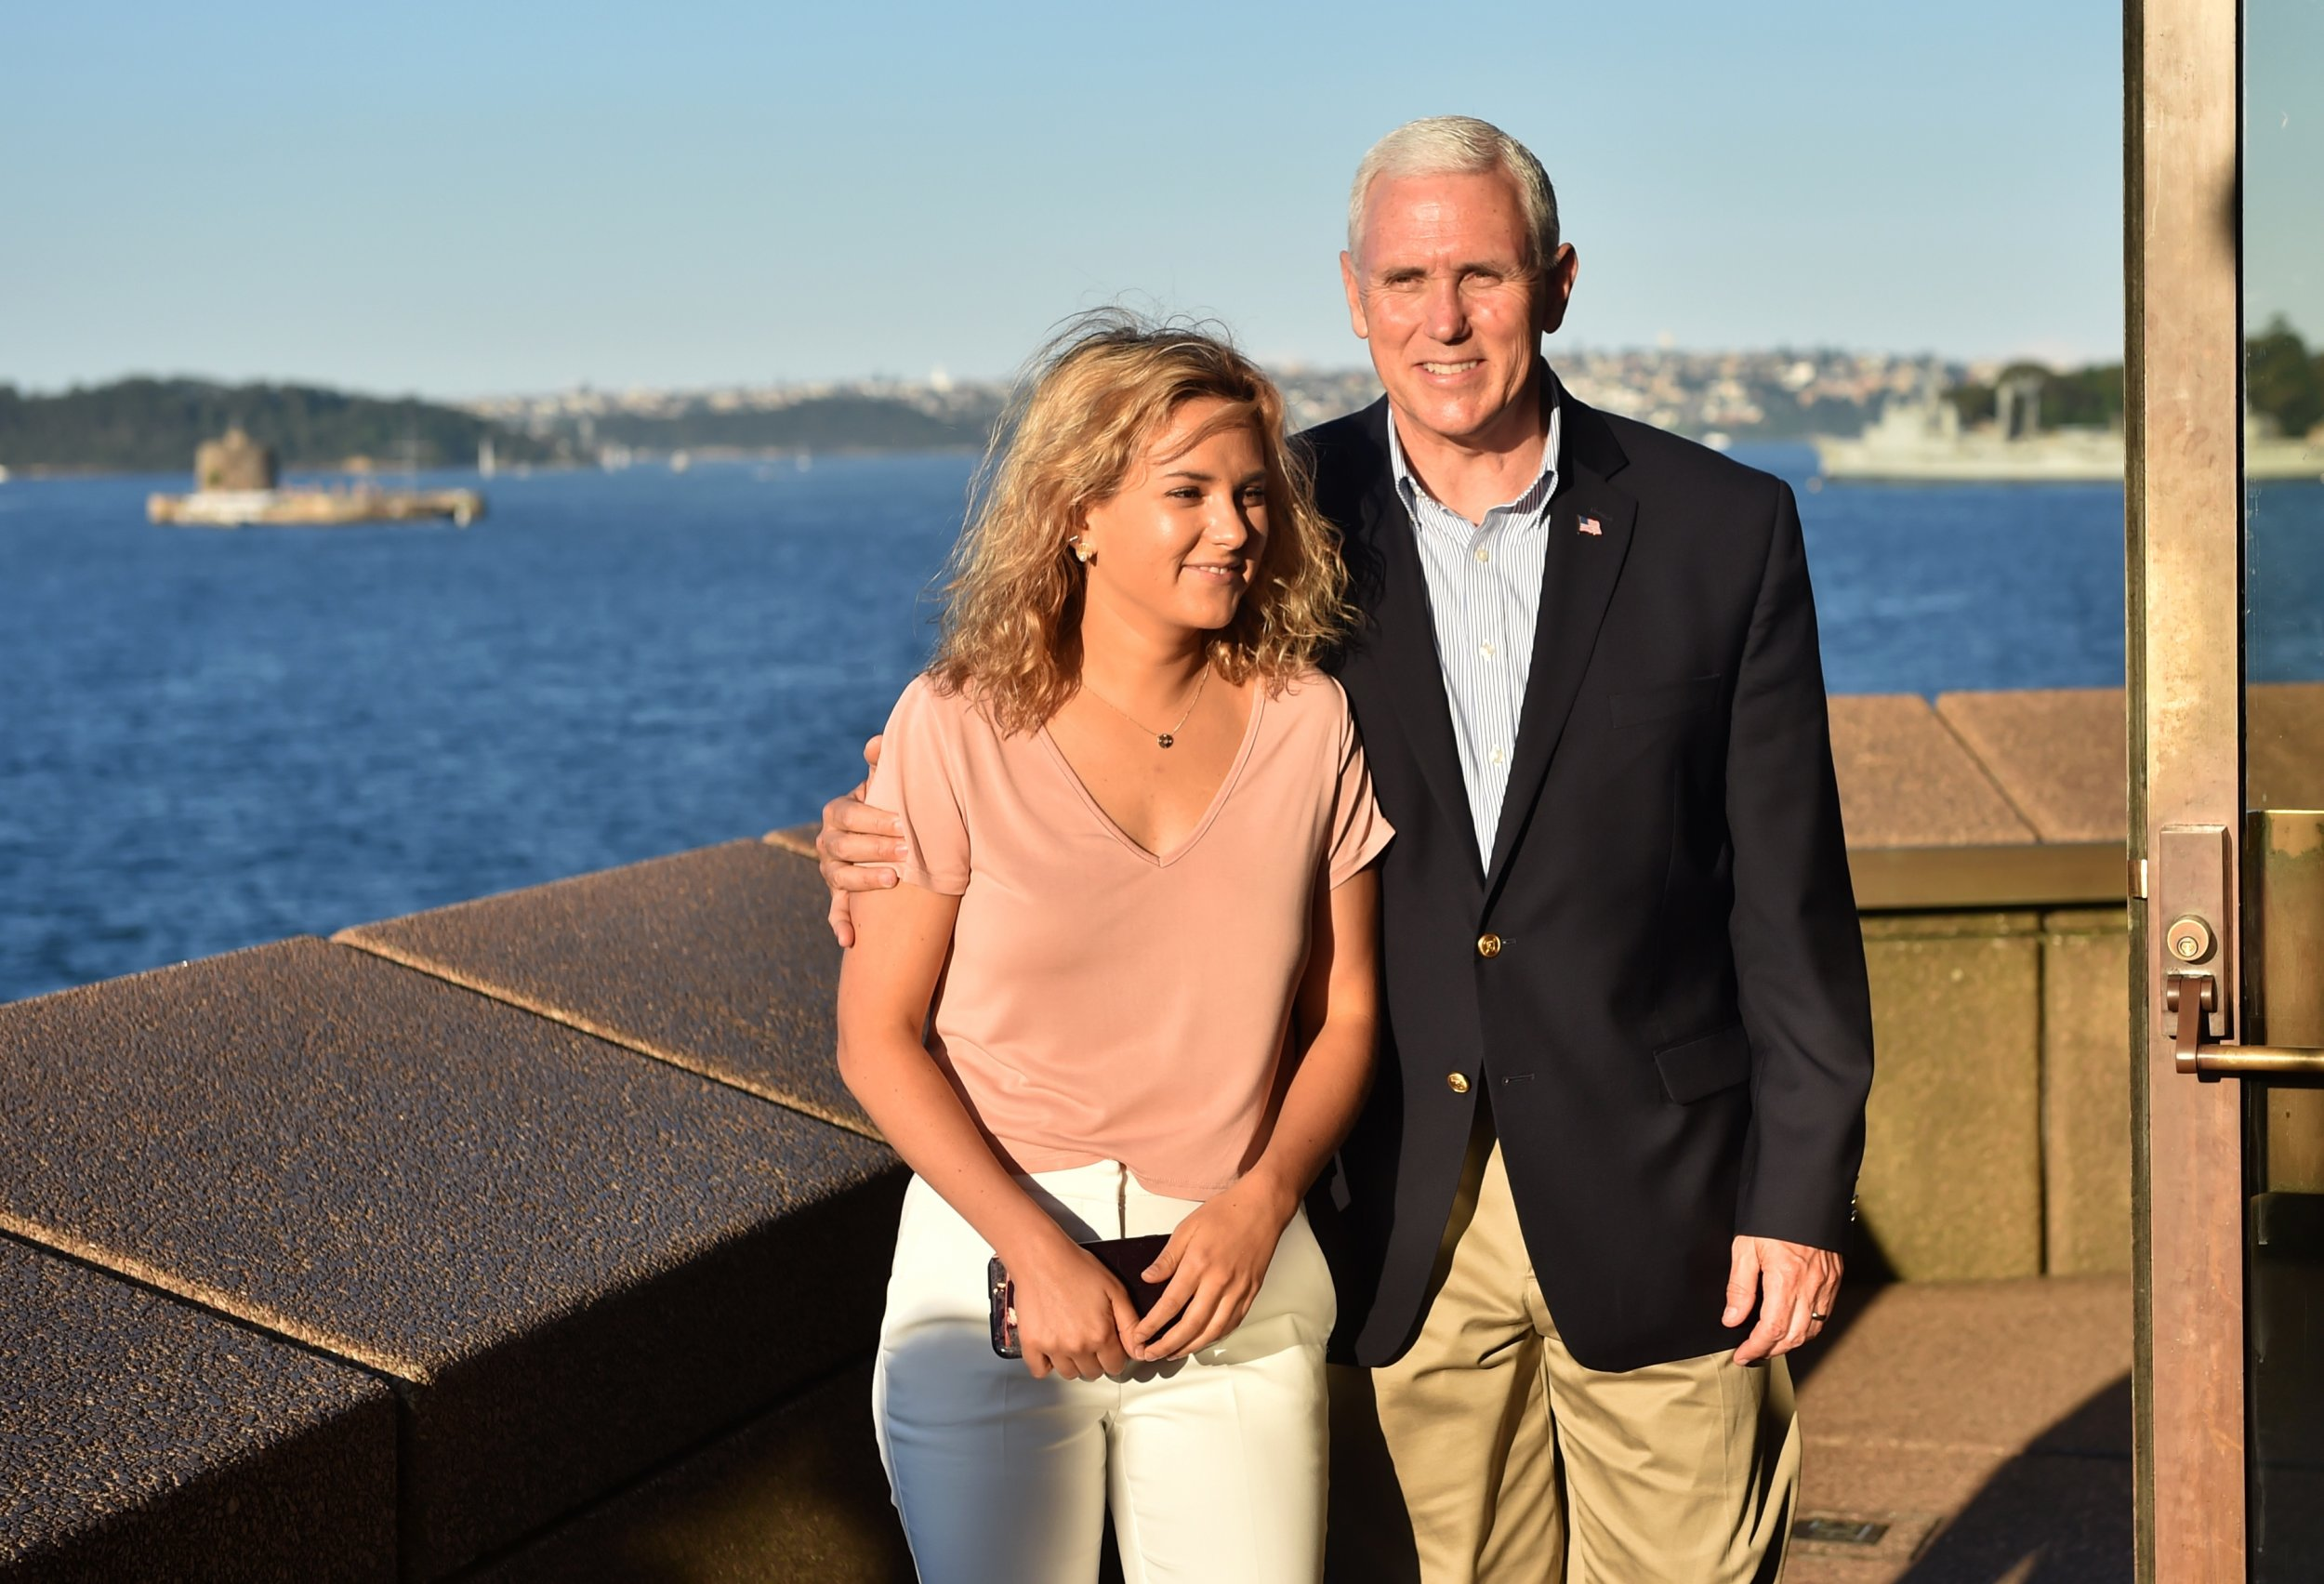 Vice Presidents Daughter Charlotte Pence Bought John Olivers Gay Bunny Book Wants To Support